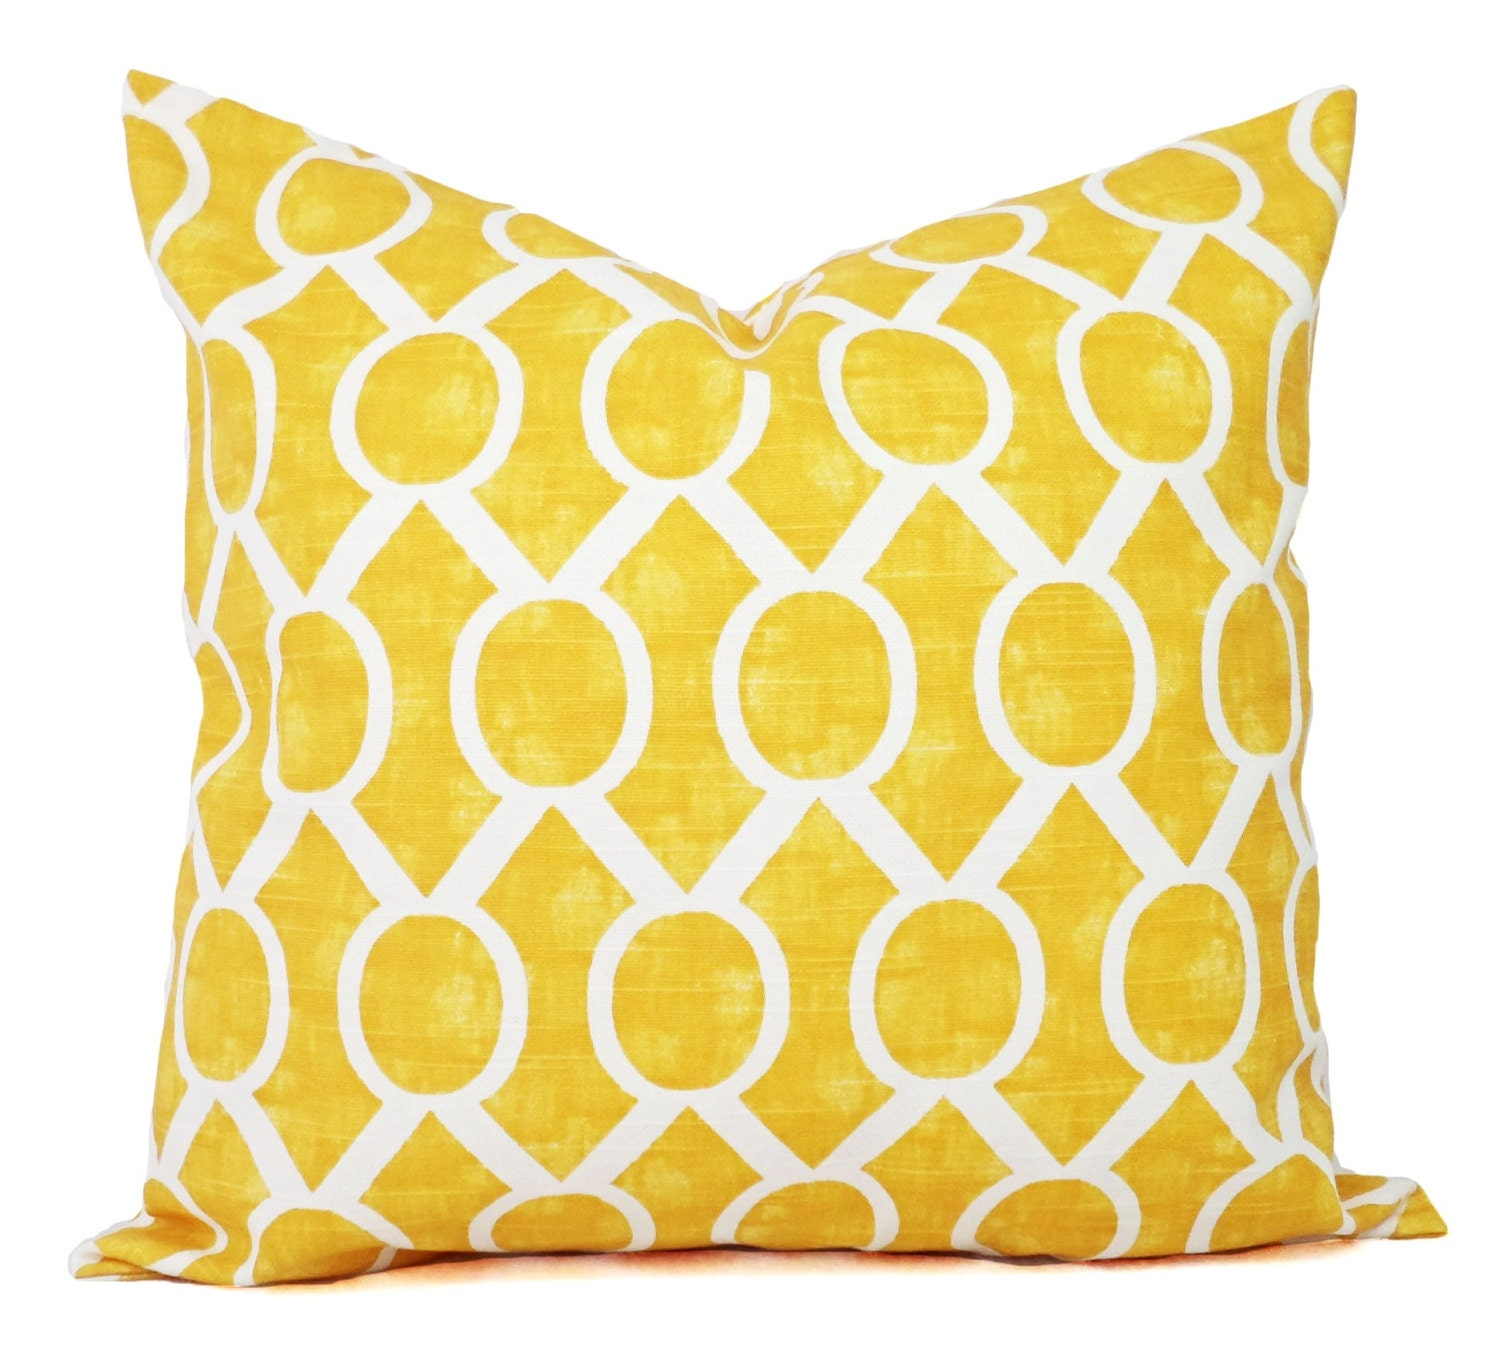 Yellow Pillow Covers Two Decorative Pillow Covers 16x16